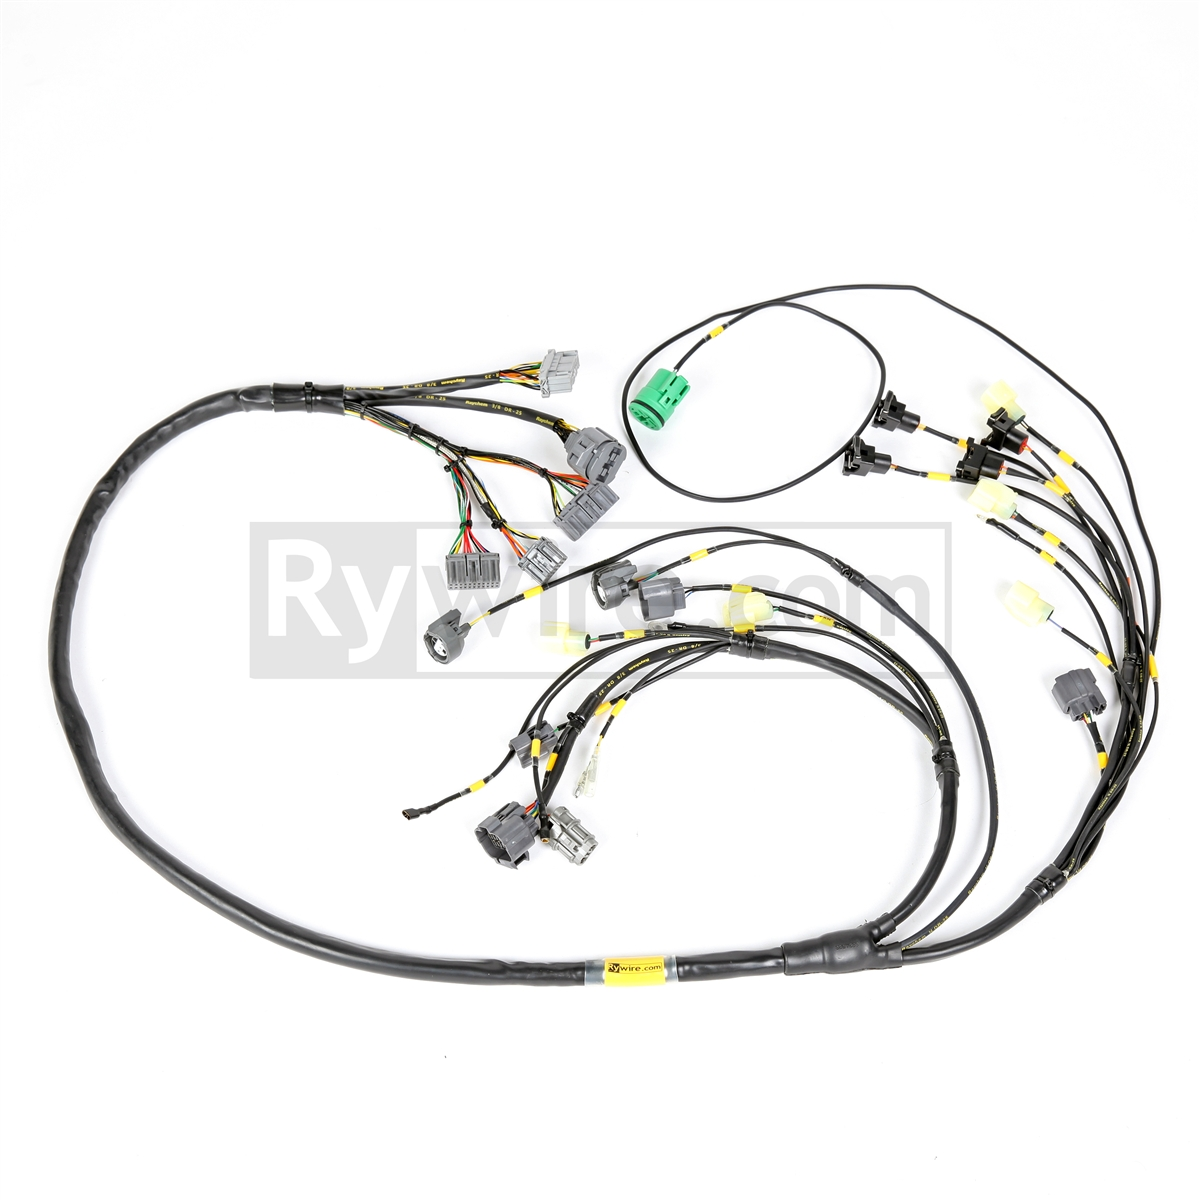 H1 Milspec 2?1402582650 rywire com mil spec f series (f20b) & h series (h22) harness Wiring Harness Diagram at readyjetset.co